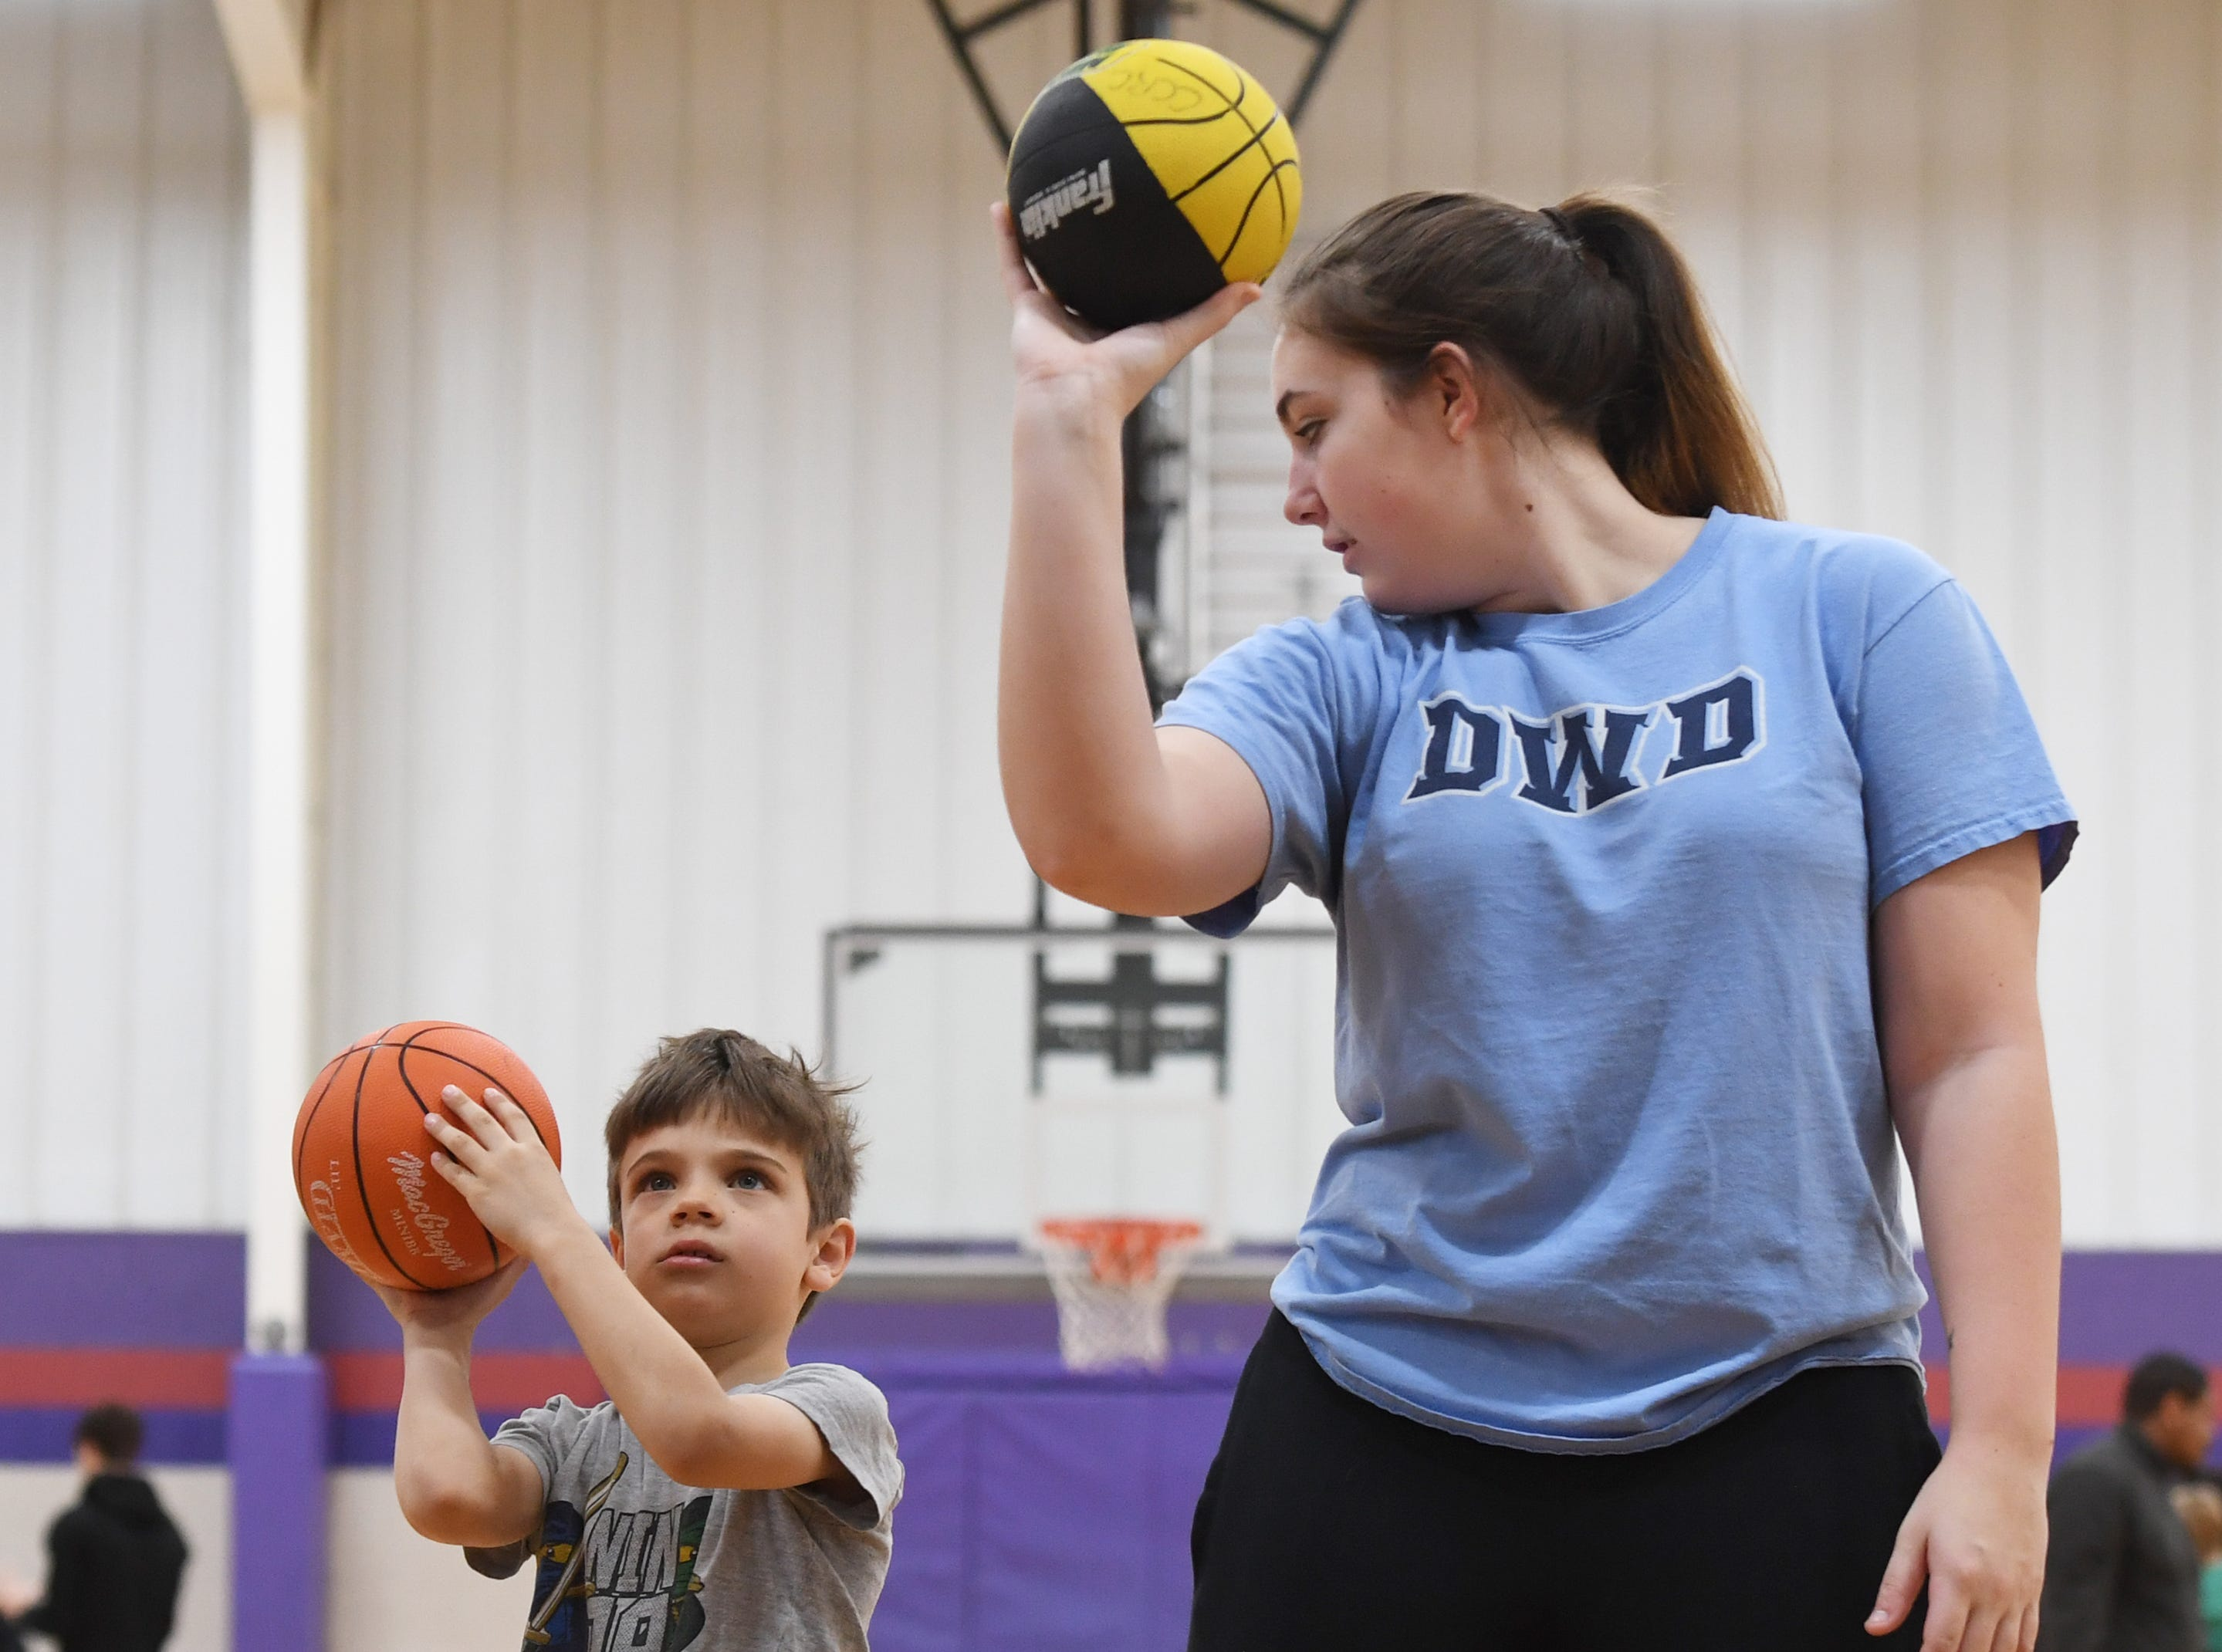 D.W. Daniel High School junior Jamie Thomas helps Filip Ziolkowski, 6, during the Smart Start Basketball program at Central-Clemson Recreational Center Saturday, Feb. 2, 2019. Ziolkowski was there while his mom, and 4 year-old twin siblings.